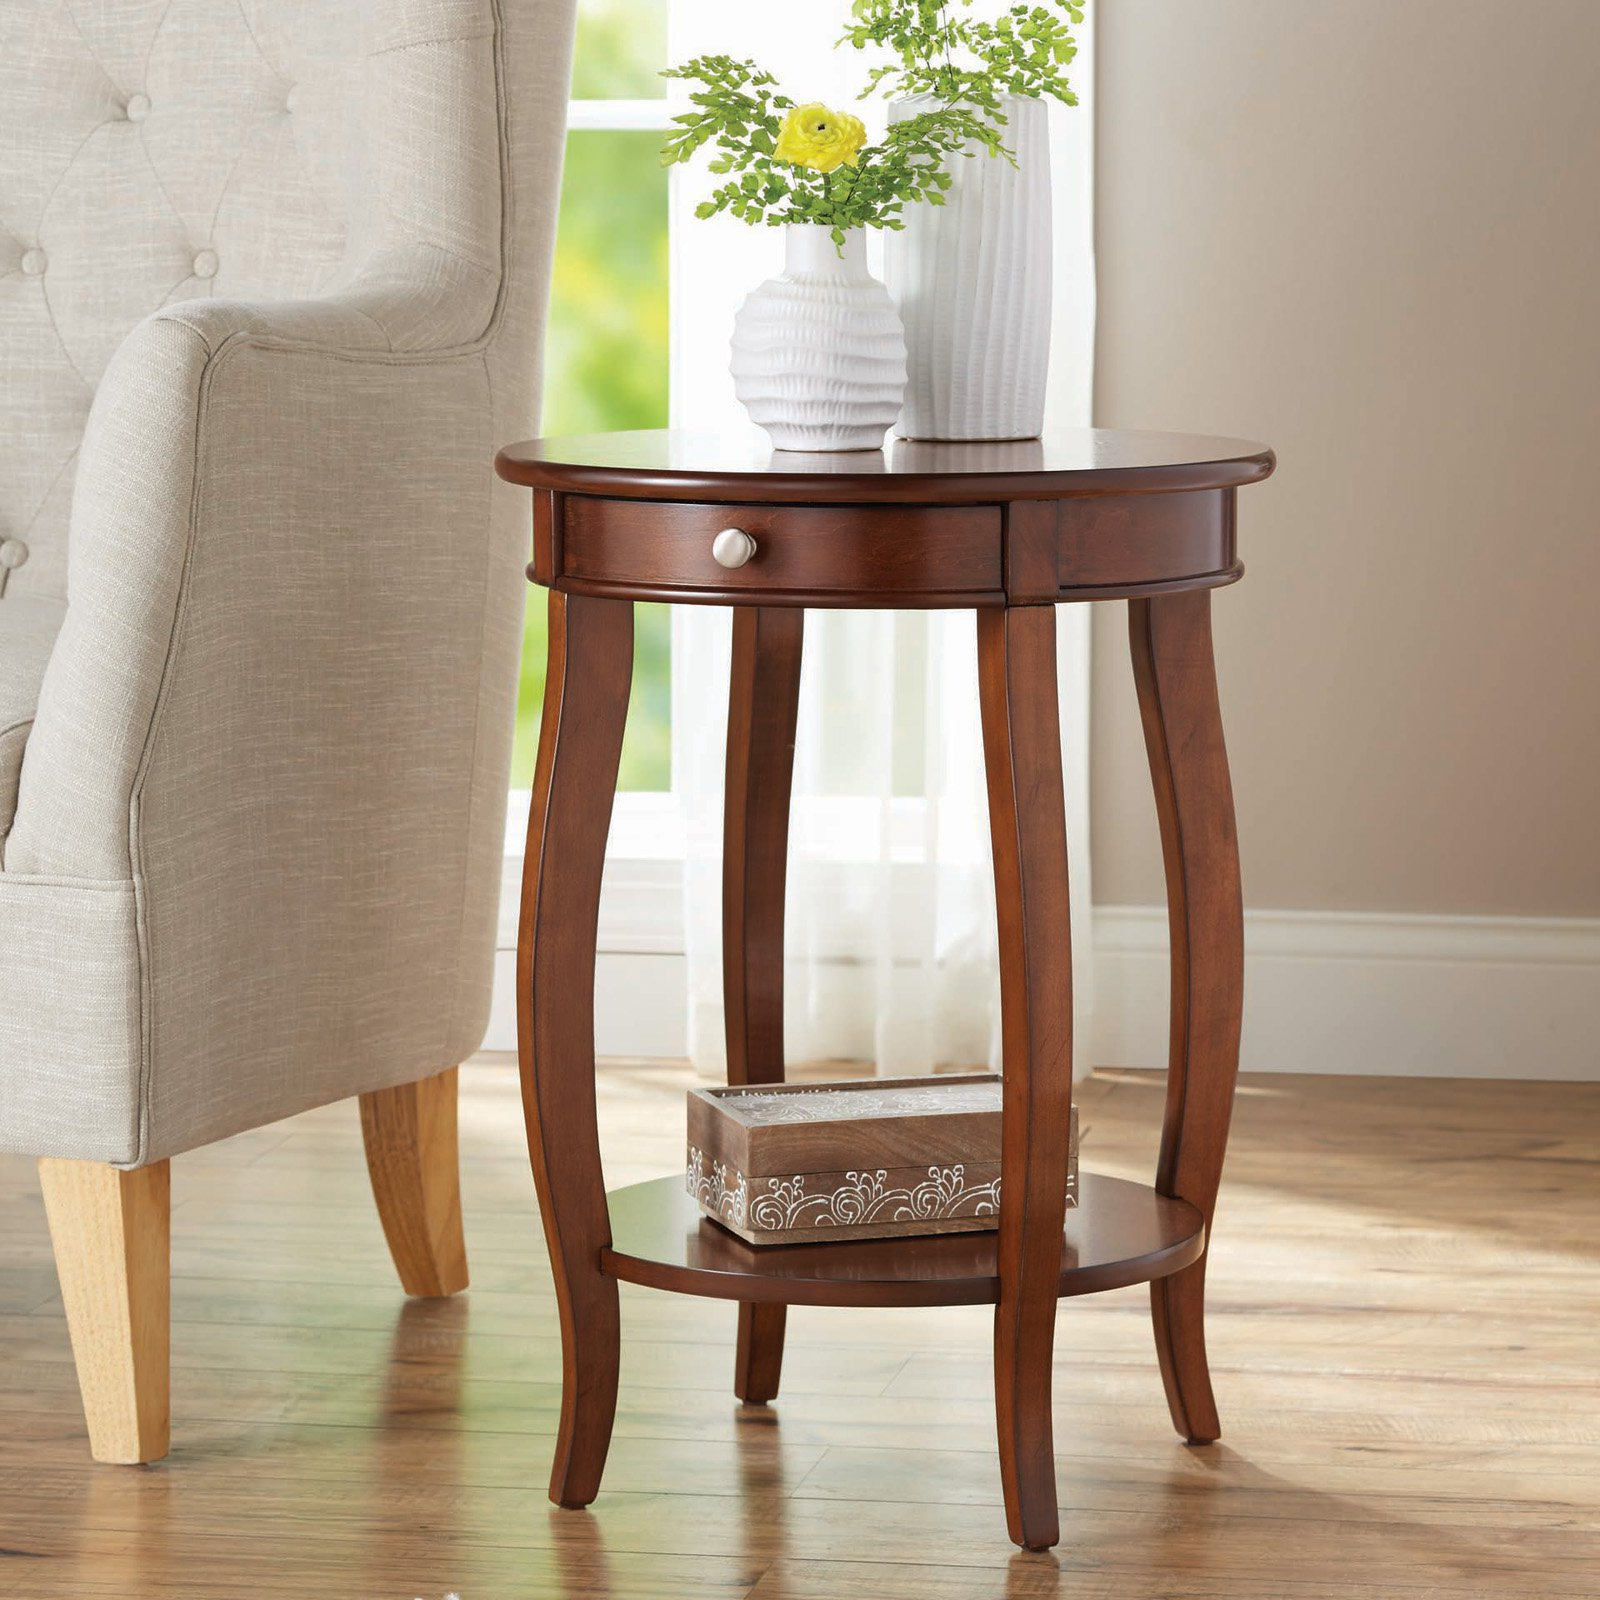 gorgeous distressed white round accent table pliva tablecloths side argos kitchen and chairs plas antique bulk top wood threshold glass pill methadone effects tablet granite